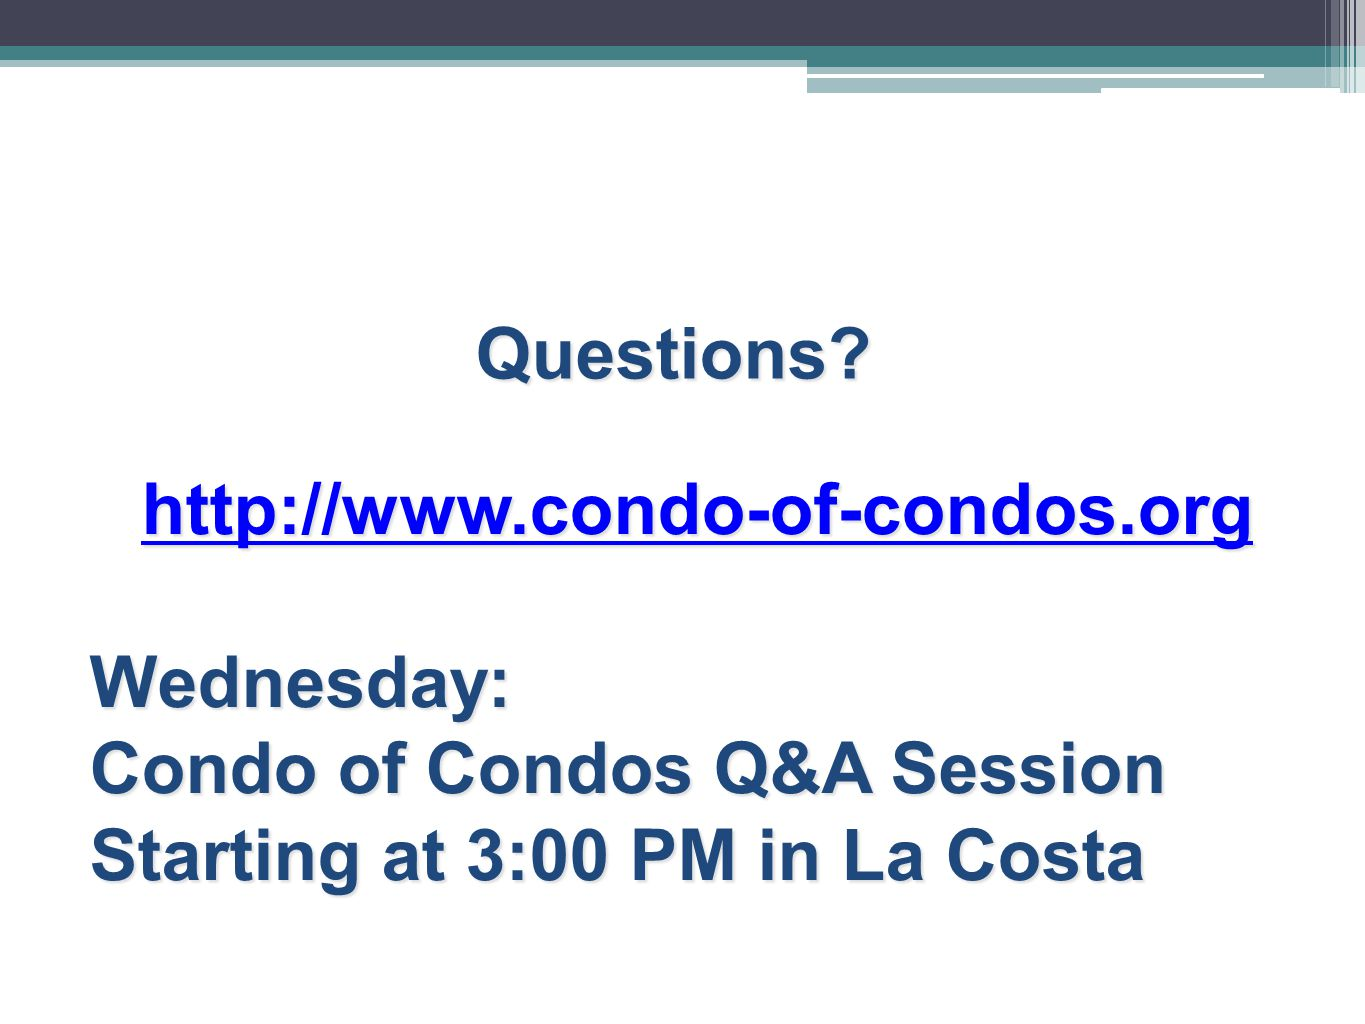 Questions? http://www.condo-of-condos.org Wednesday: Condo of Condos Q&A Session Starting at 3:00 PM in La Costa